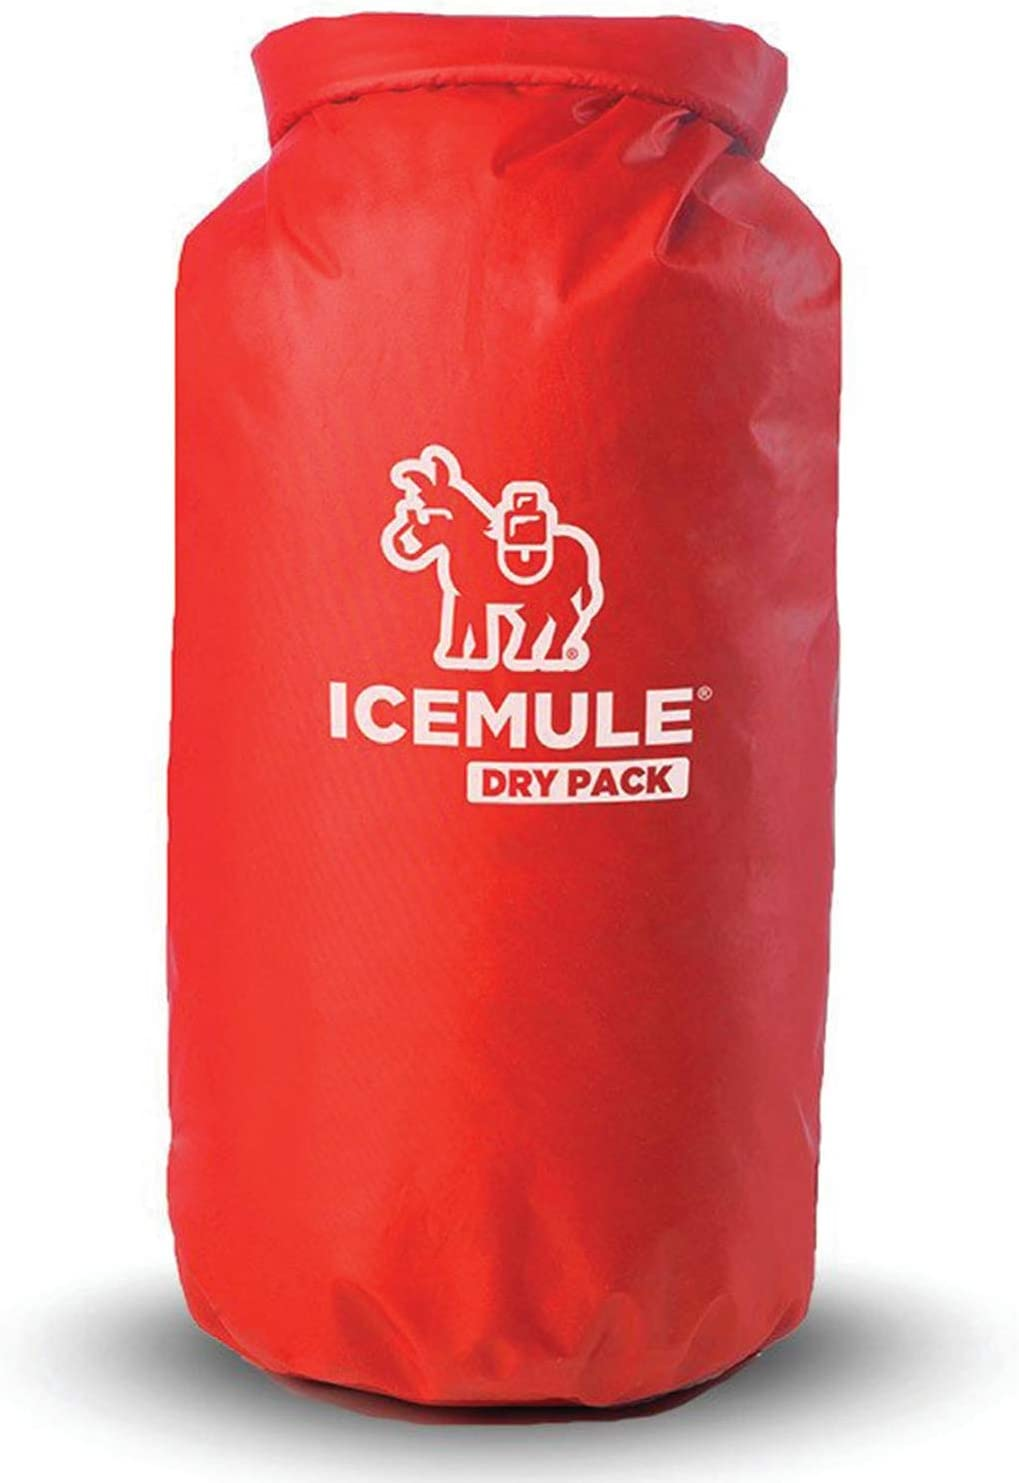 IceMule 1300 Pro Dry Pack 10 Liter Outdoor Water Resistant Travel Sized Nylon Camping Food Storage Pouch and Dry Bag, Red